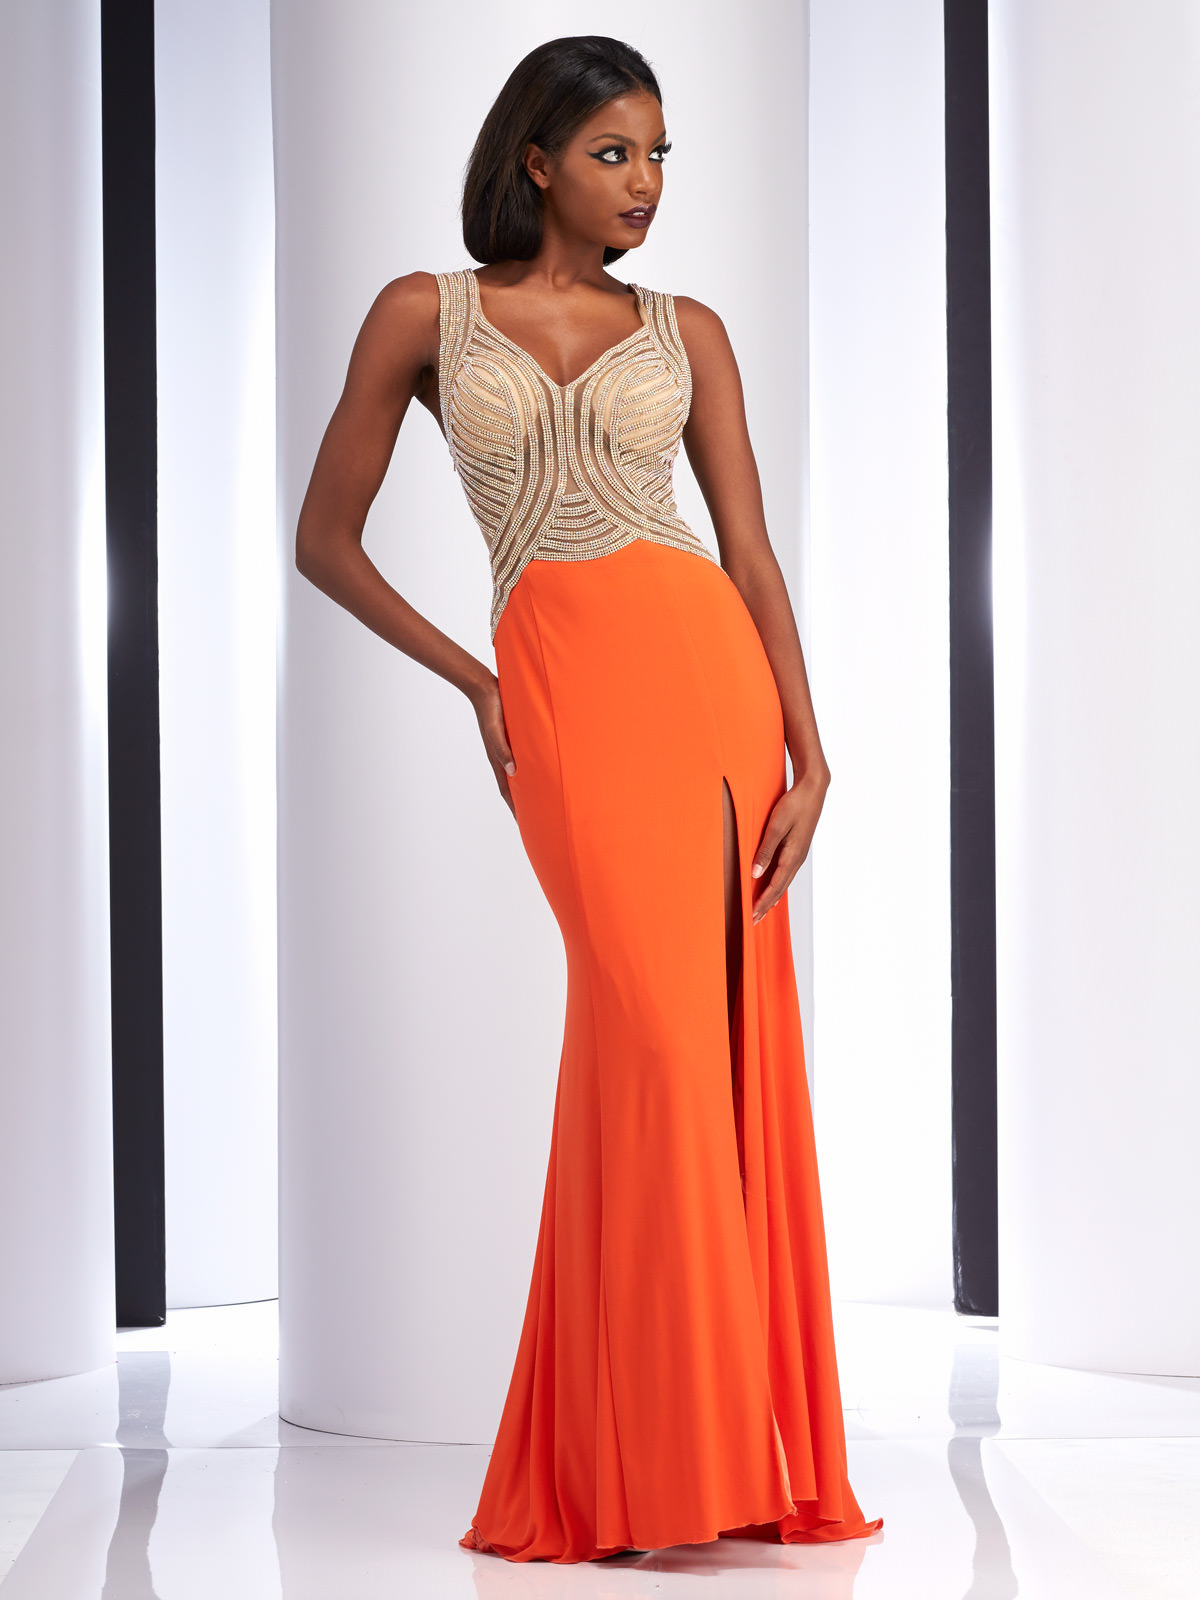 Short Orange Prom Dresses with Strapes